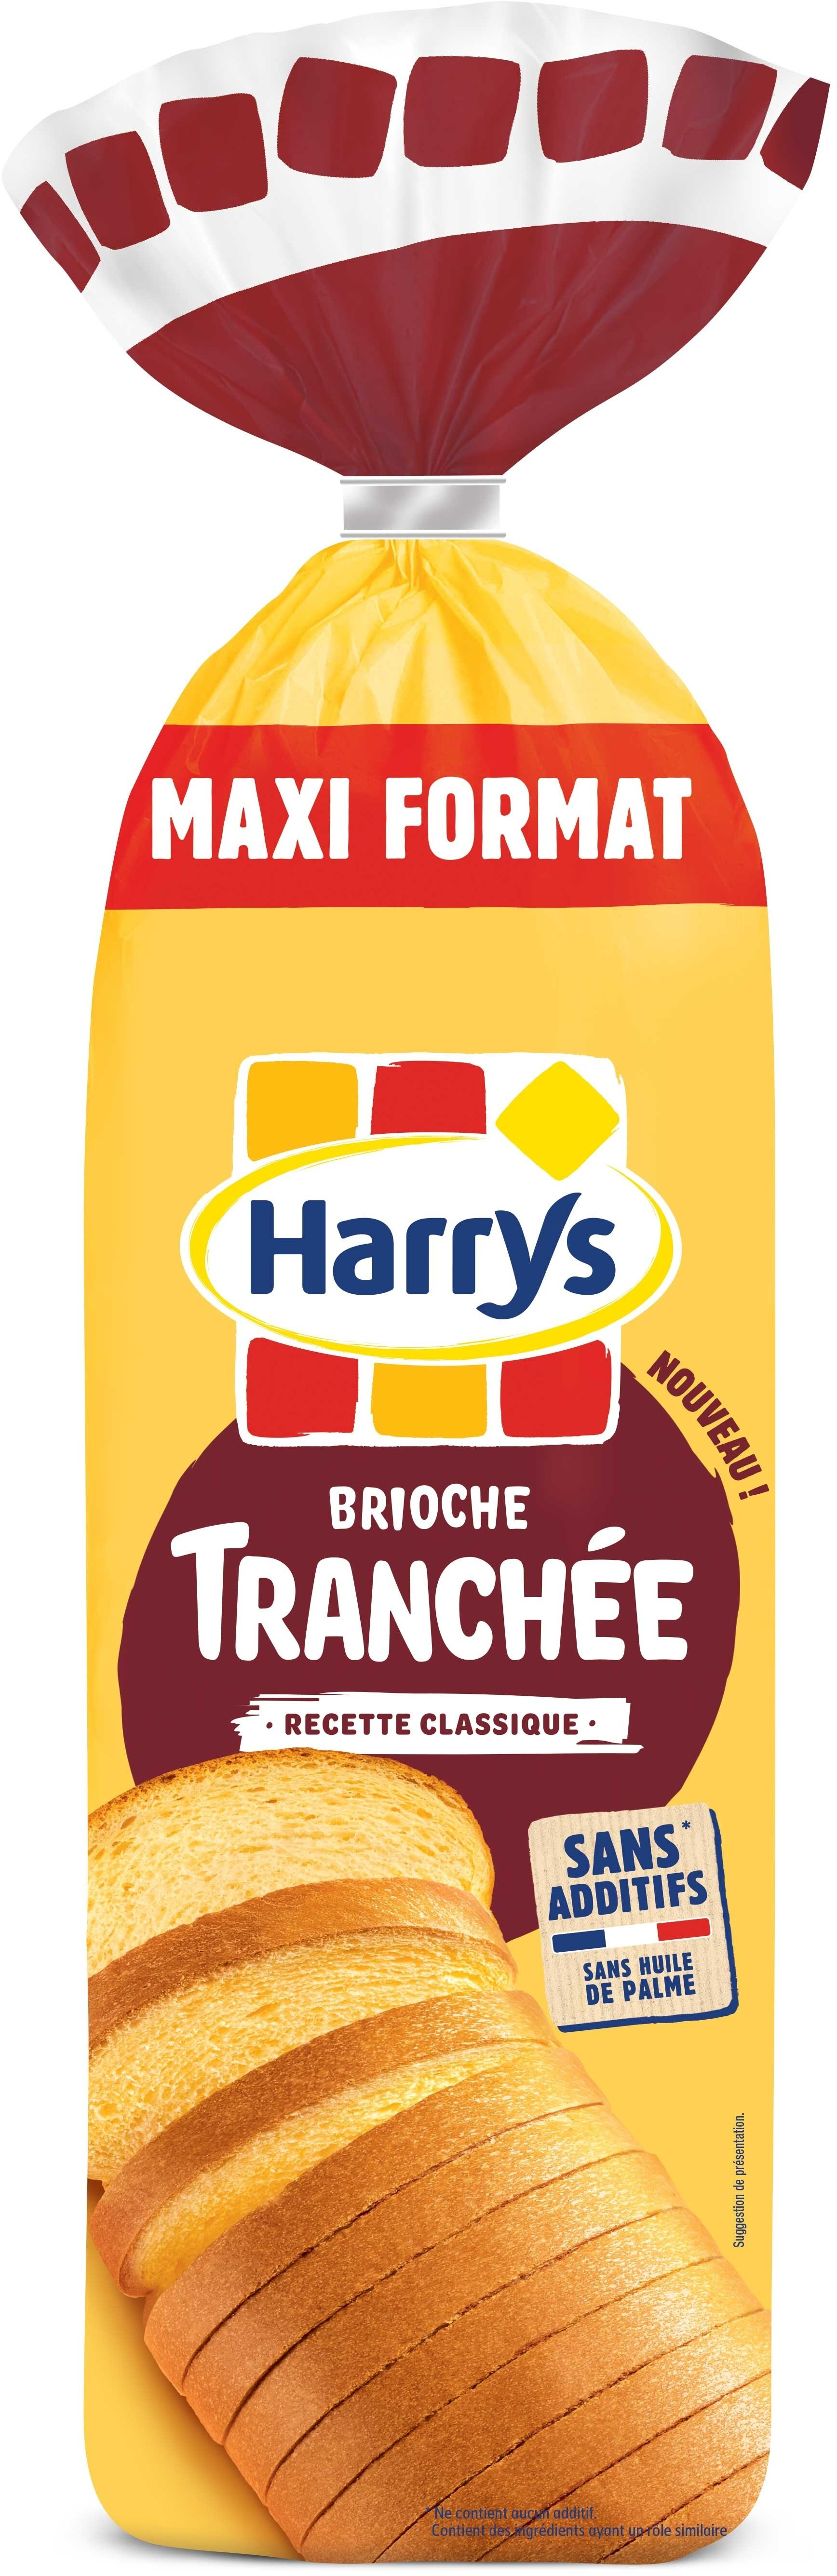 Brioche tranchée nature ss additif - Product - fr